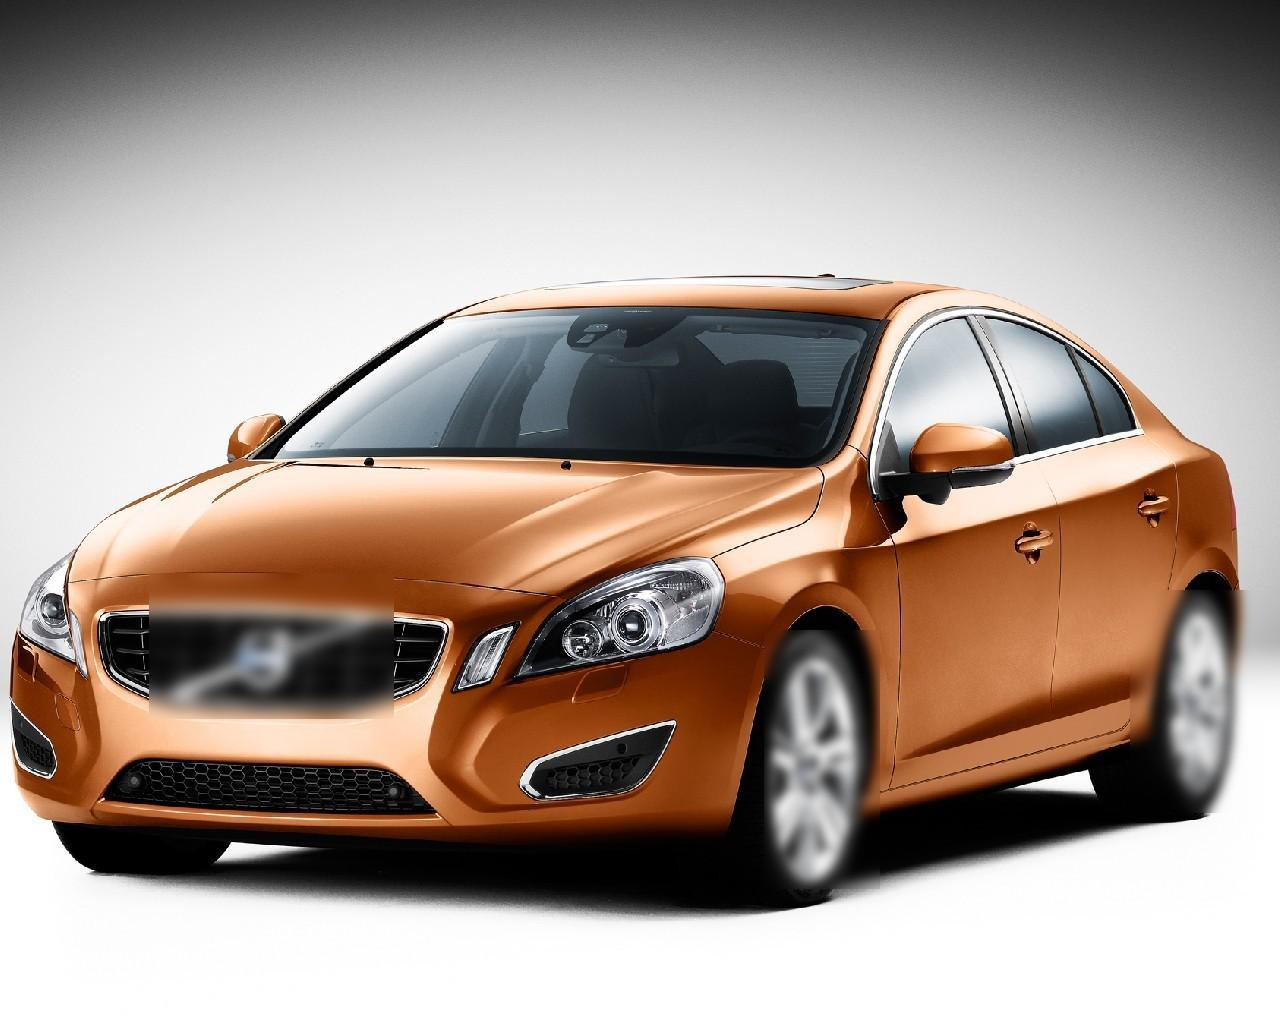 New Hd Wallpapers Volvo Cars 2017 For Android Apk Download